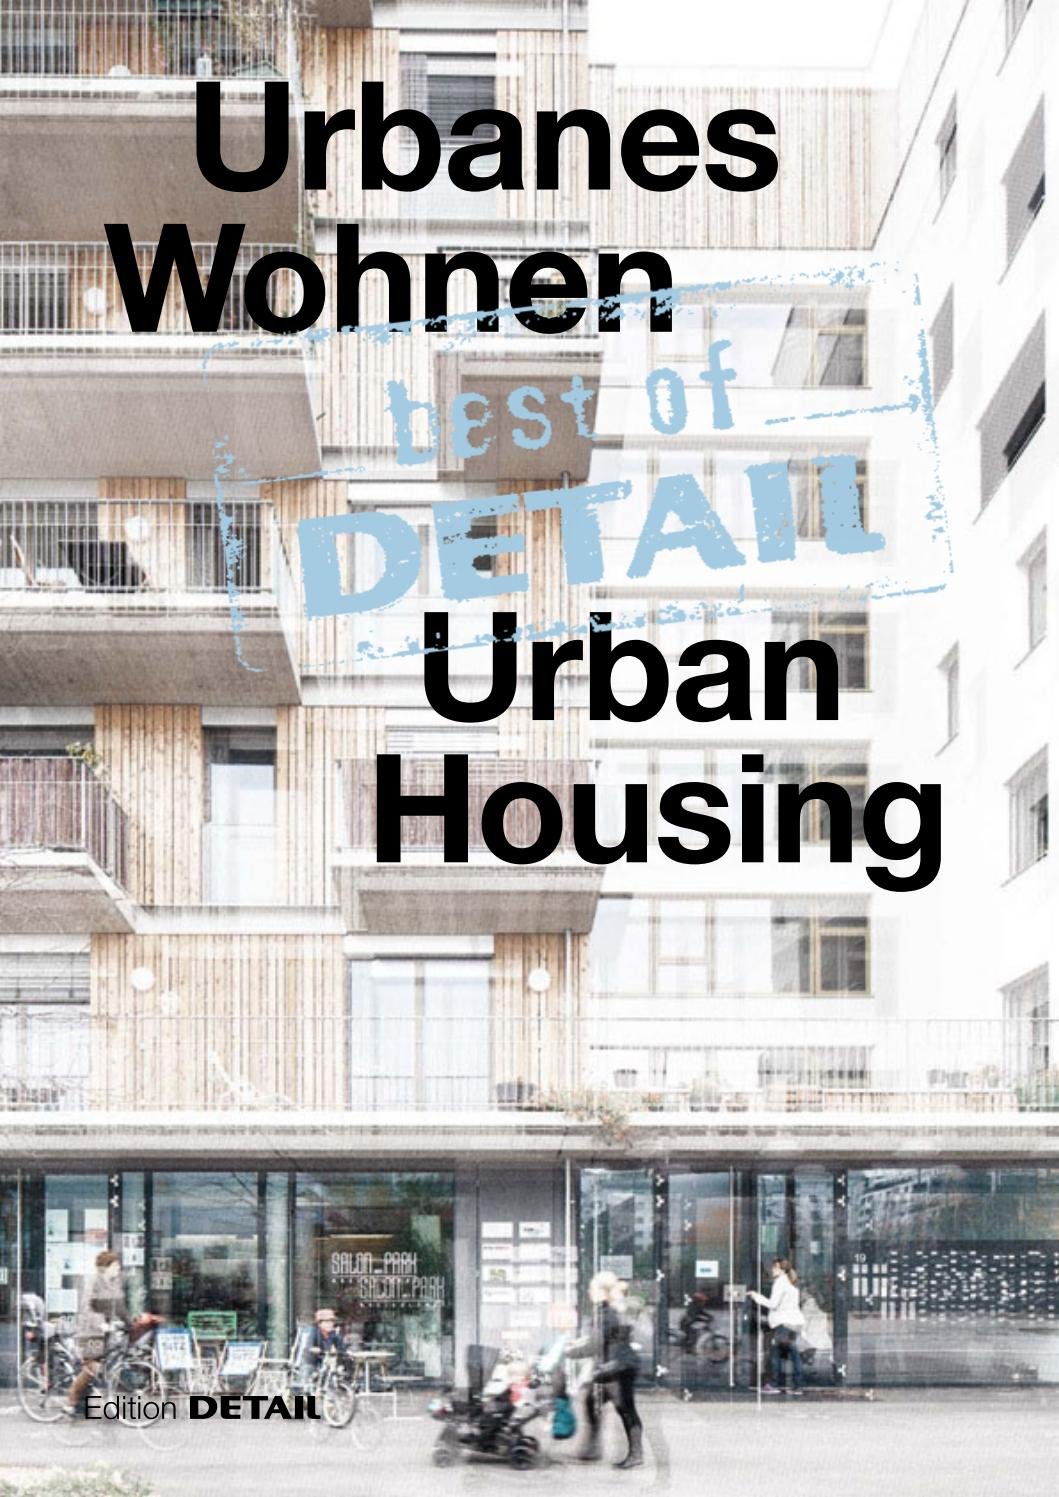 best of DETAIL Urbanes Wohnen by DETAIL - issuu